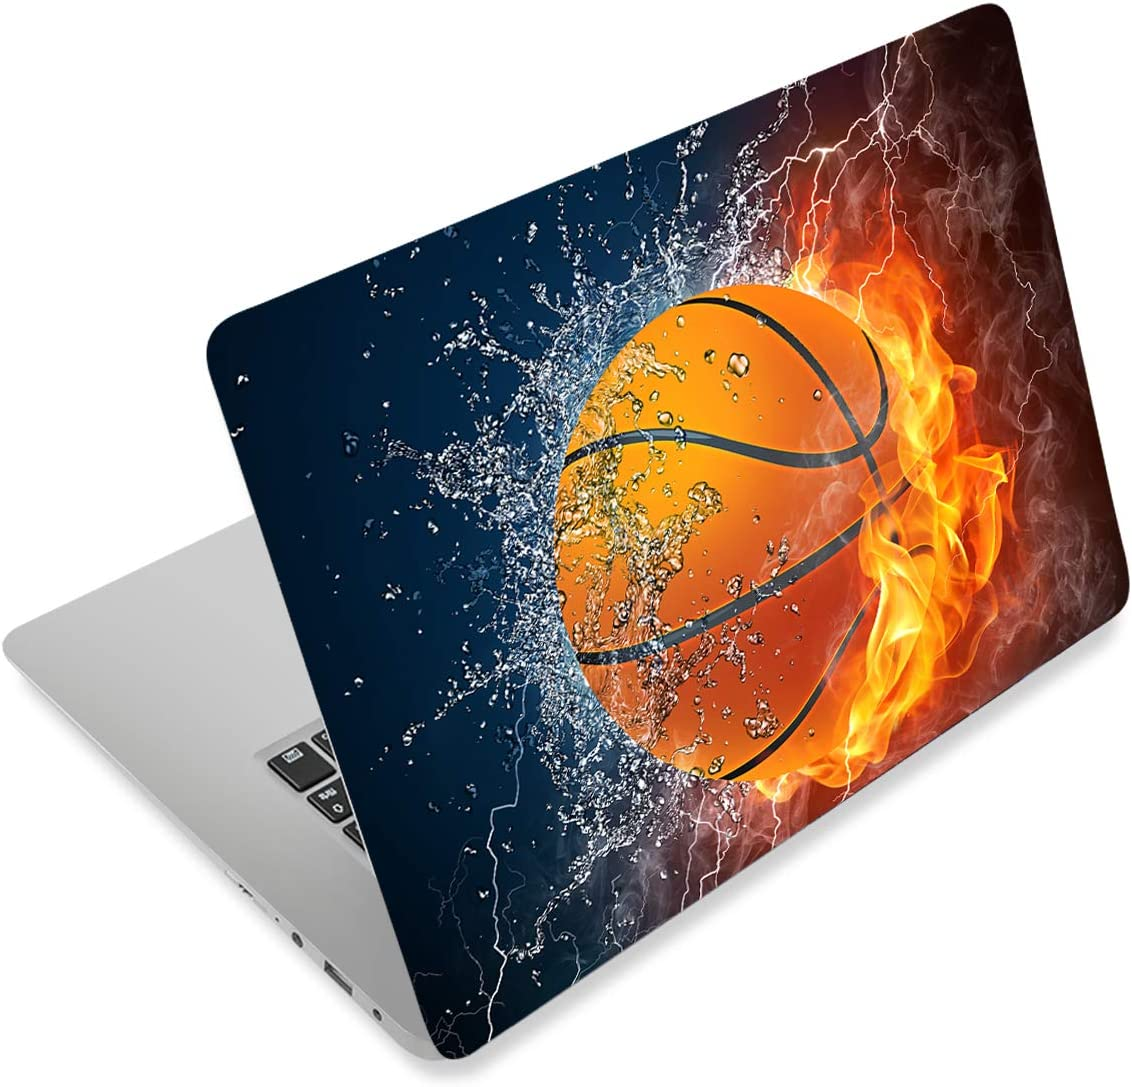 Laptop Notebook Skin Sticker Cover Decal Fits 12 13 13.3 14 15 15.4 15.6 inch Laptop Protector Notebook PC   Easy to Apply, Remove and Change Styles (Basketball Fire)